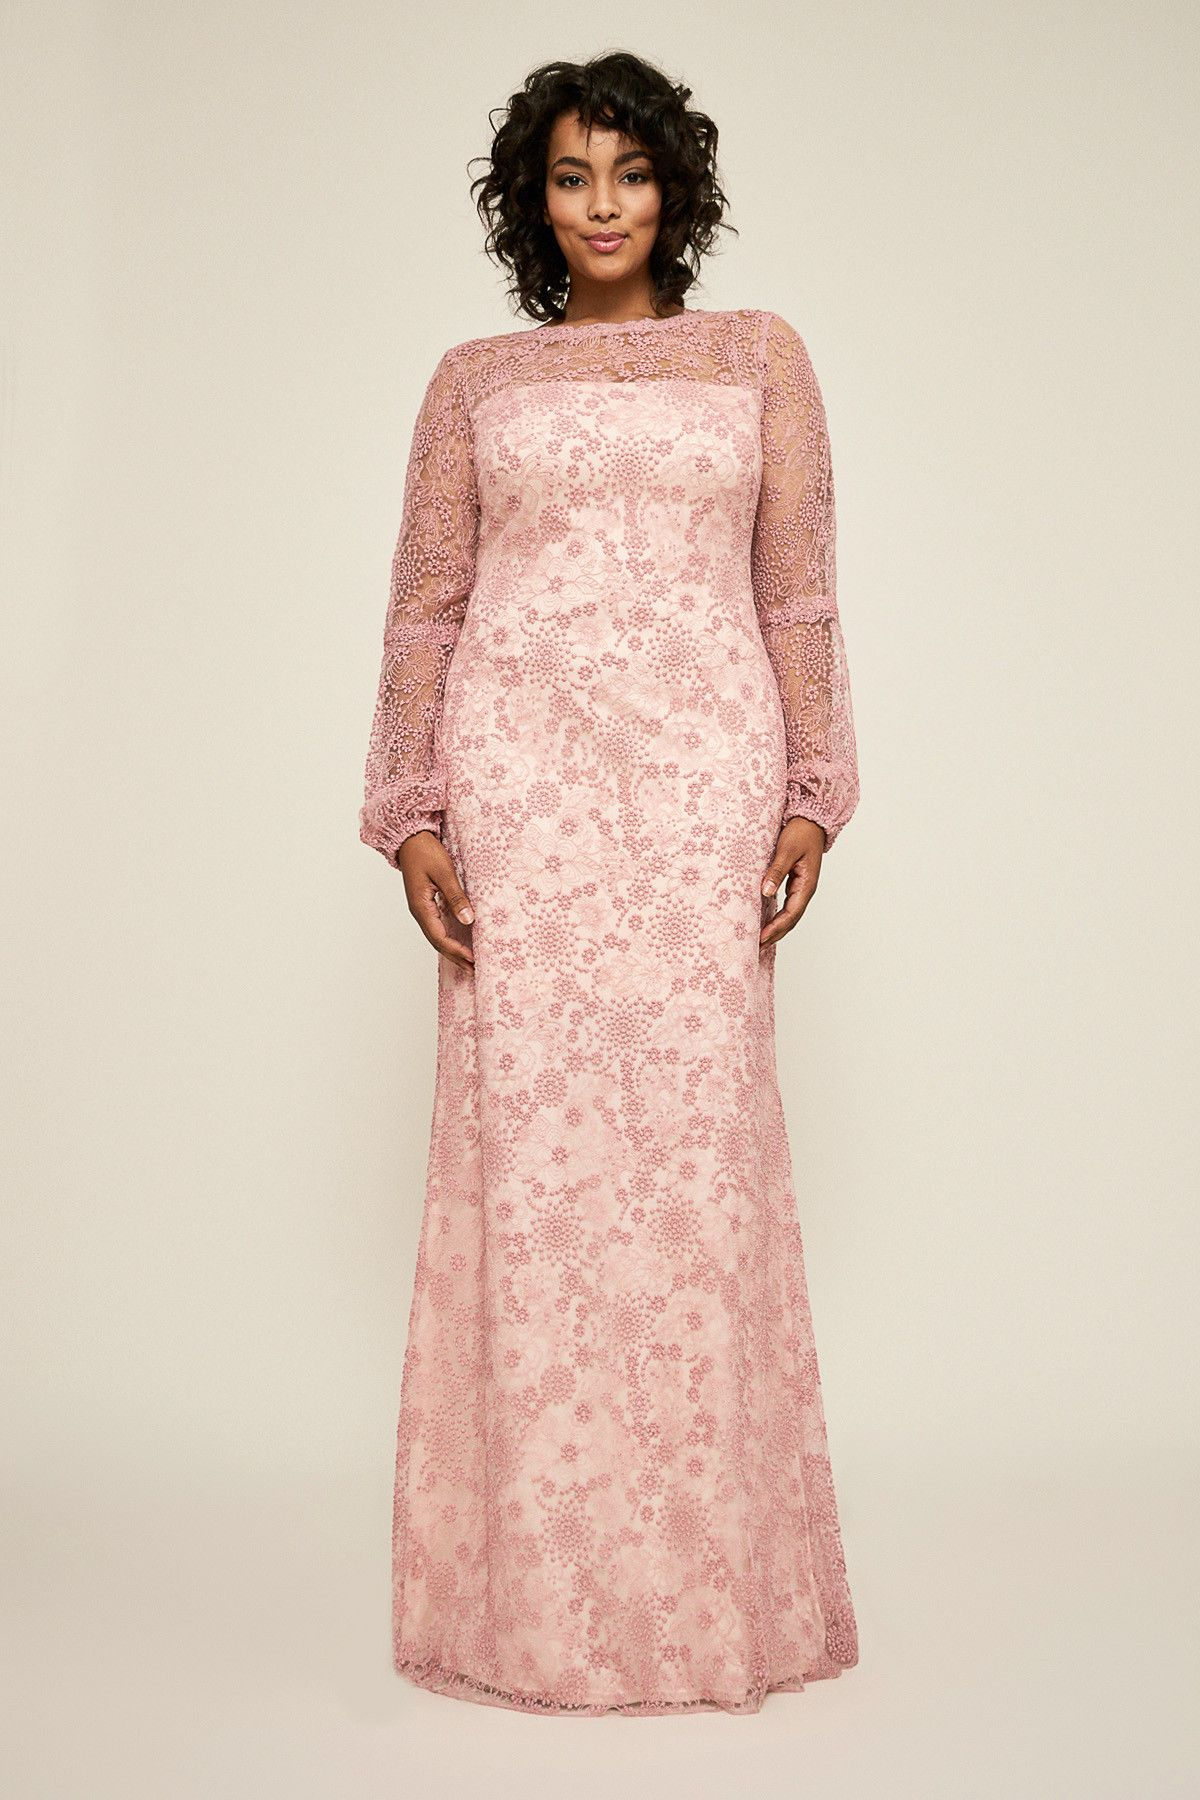 d4db94f481b Neriah Long-Sleeve Lace Gown - PLUS SIZE